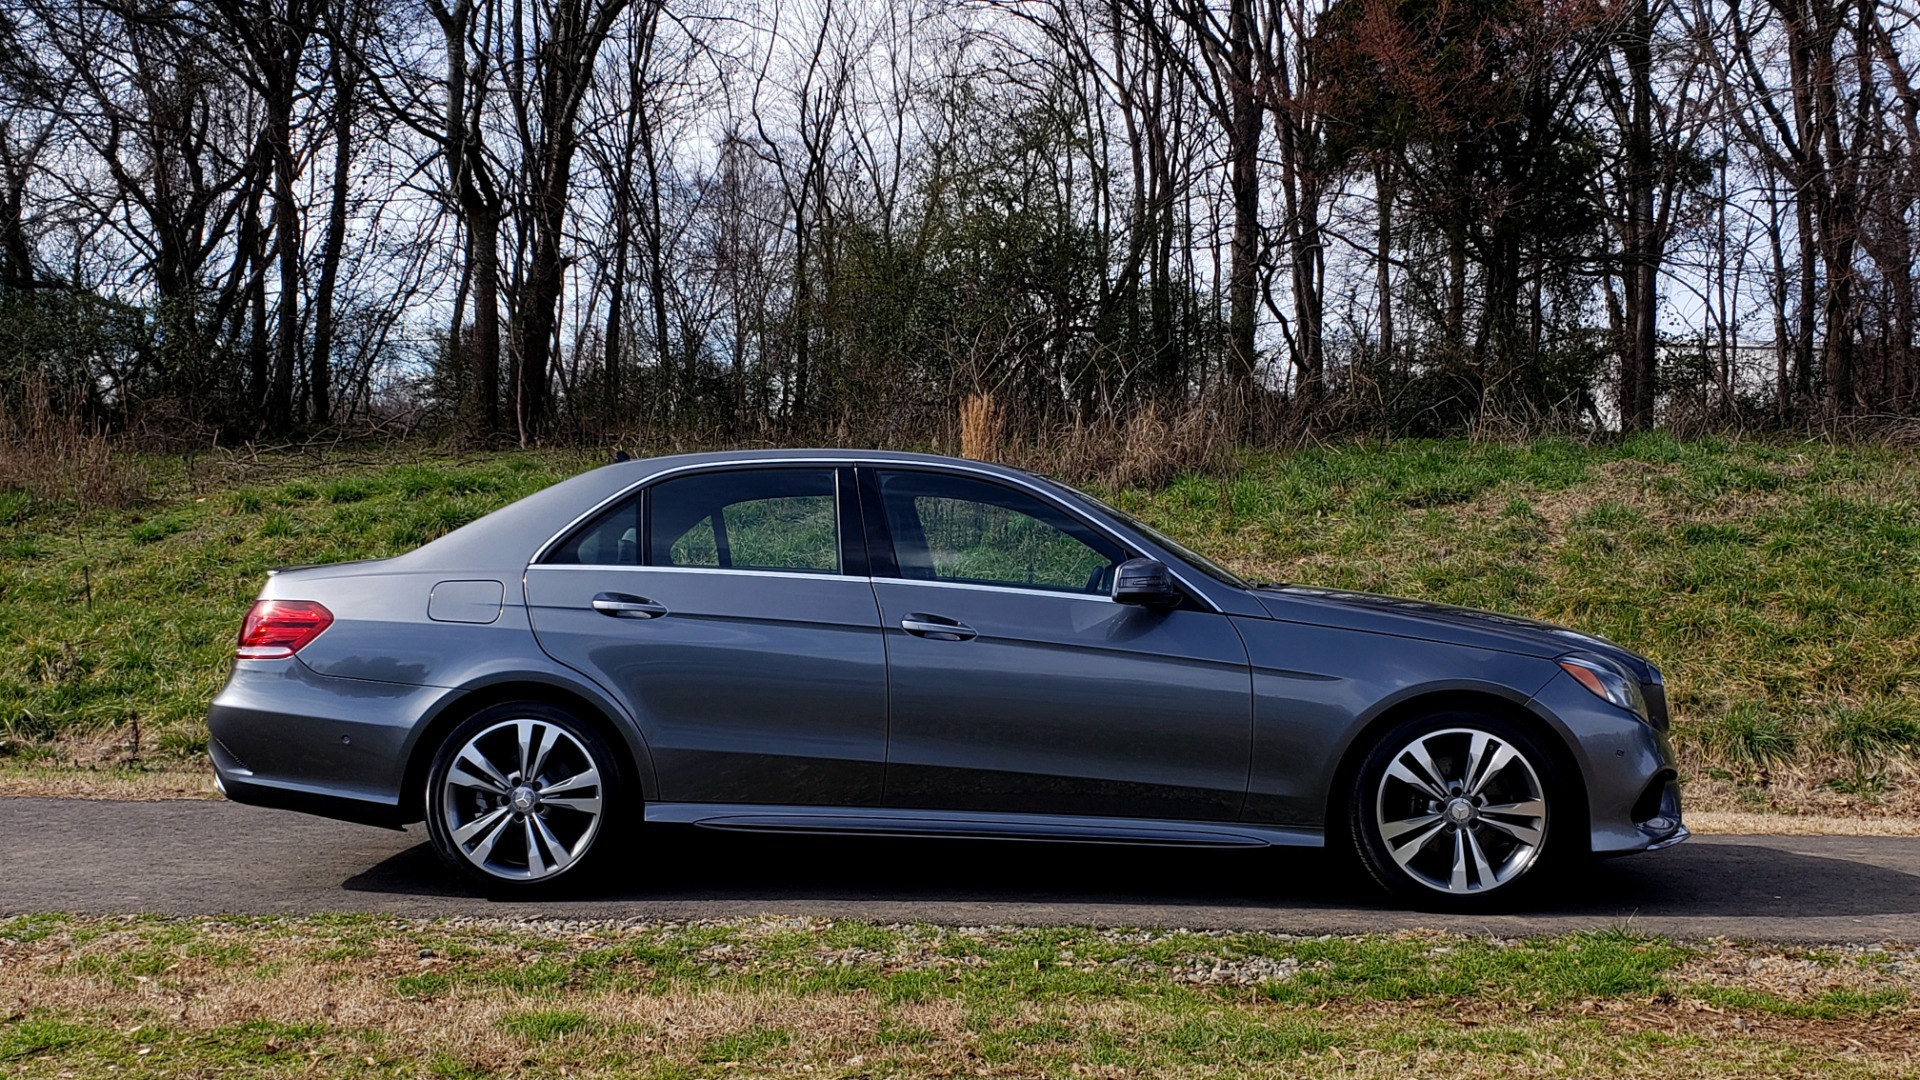 Used 2016 Mercedes-Benz E-CLASS E 350 PREM / KEYLESS-GO / NAV / SUNROOF / REARVIEW for sale Sold at Formula Imports in Charlotte NC 28227 5